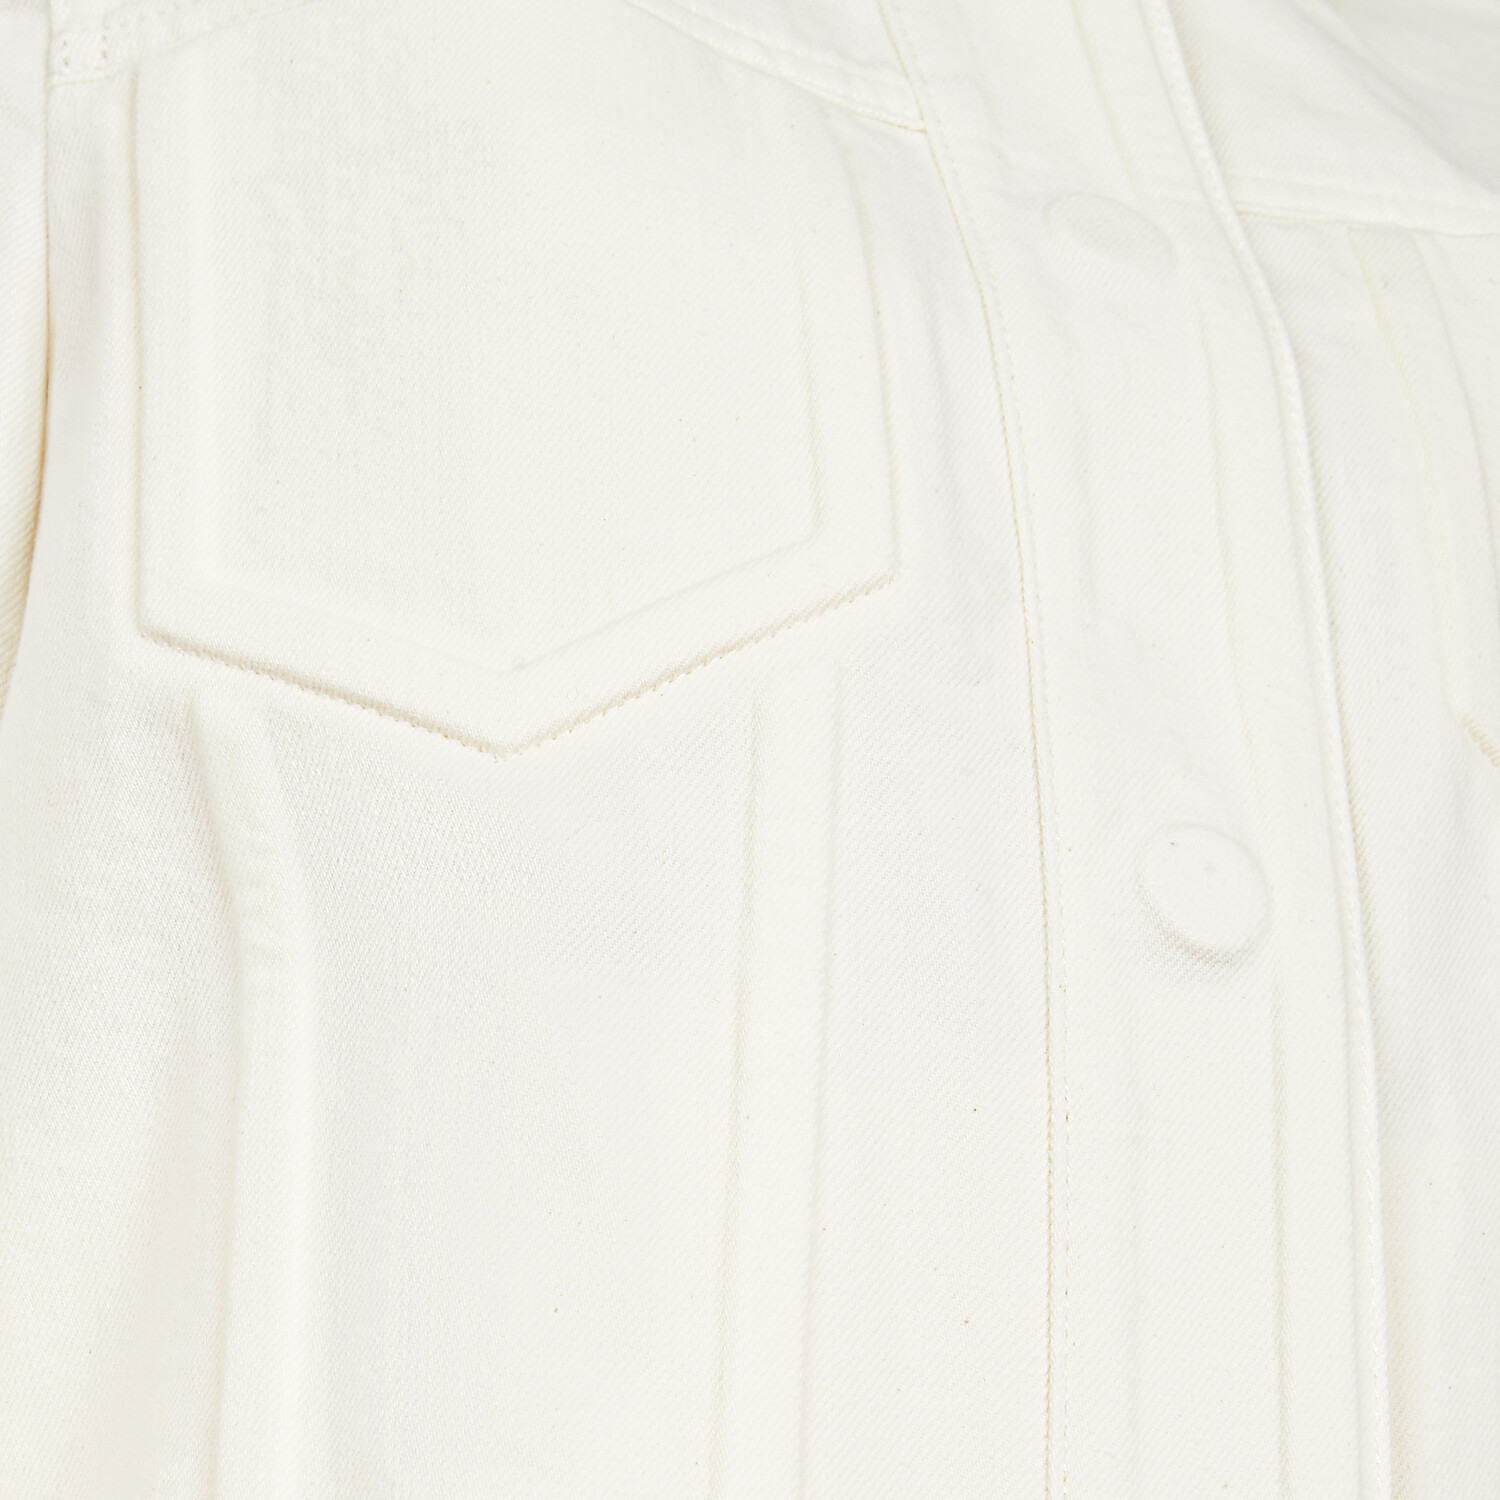 FENDI JACKET - White denim jacket - view 3 detail